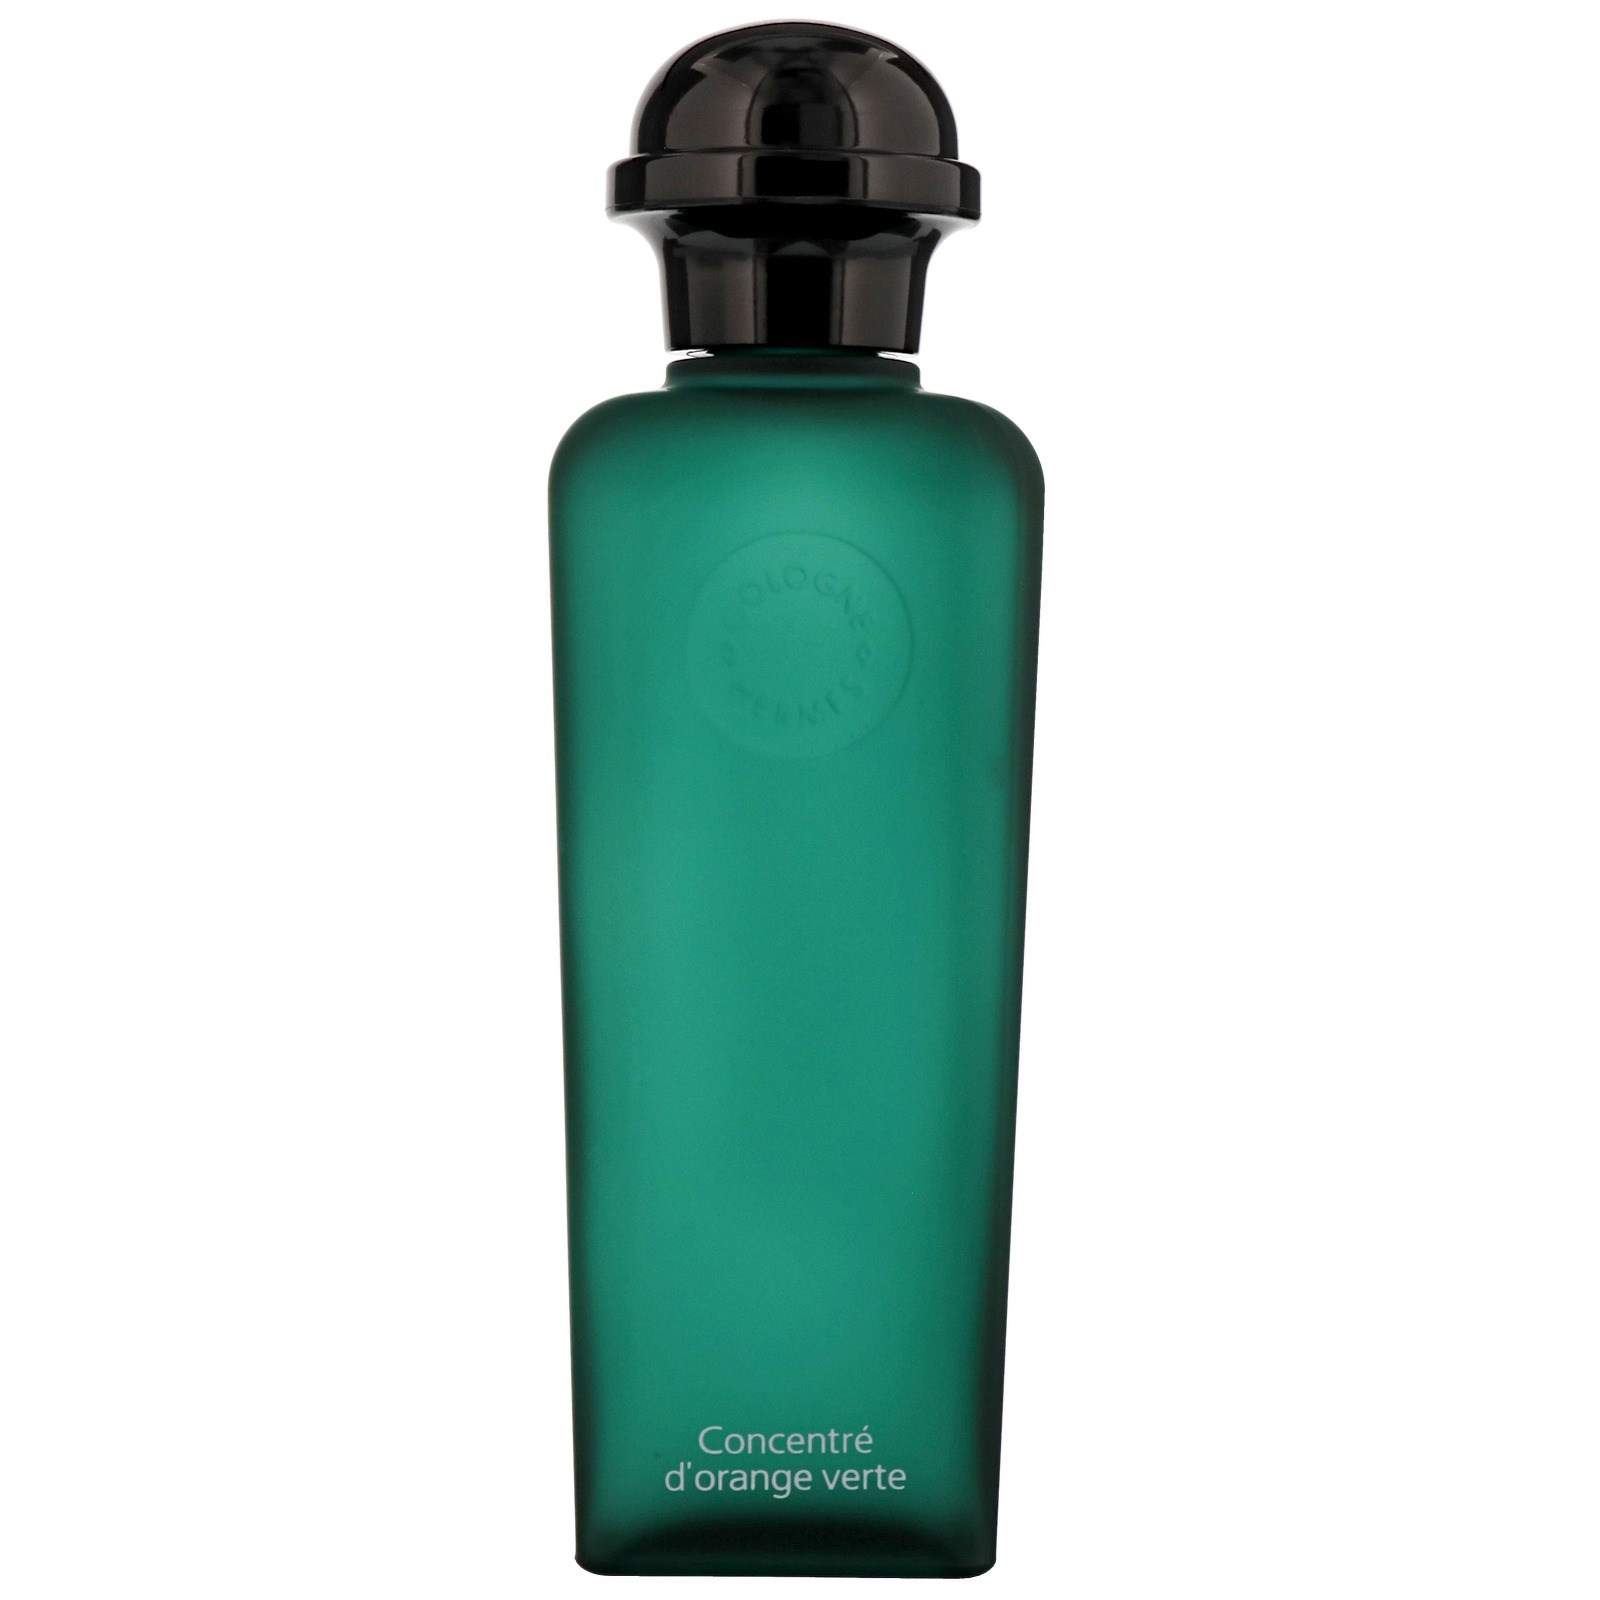 Hermes Concentre D'Orange Verte Eau de Toilette Spray 200ml